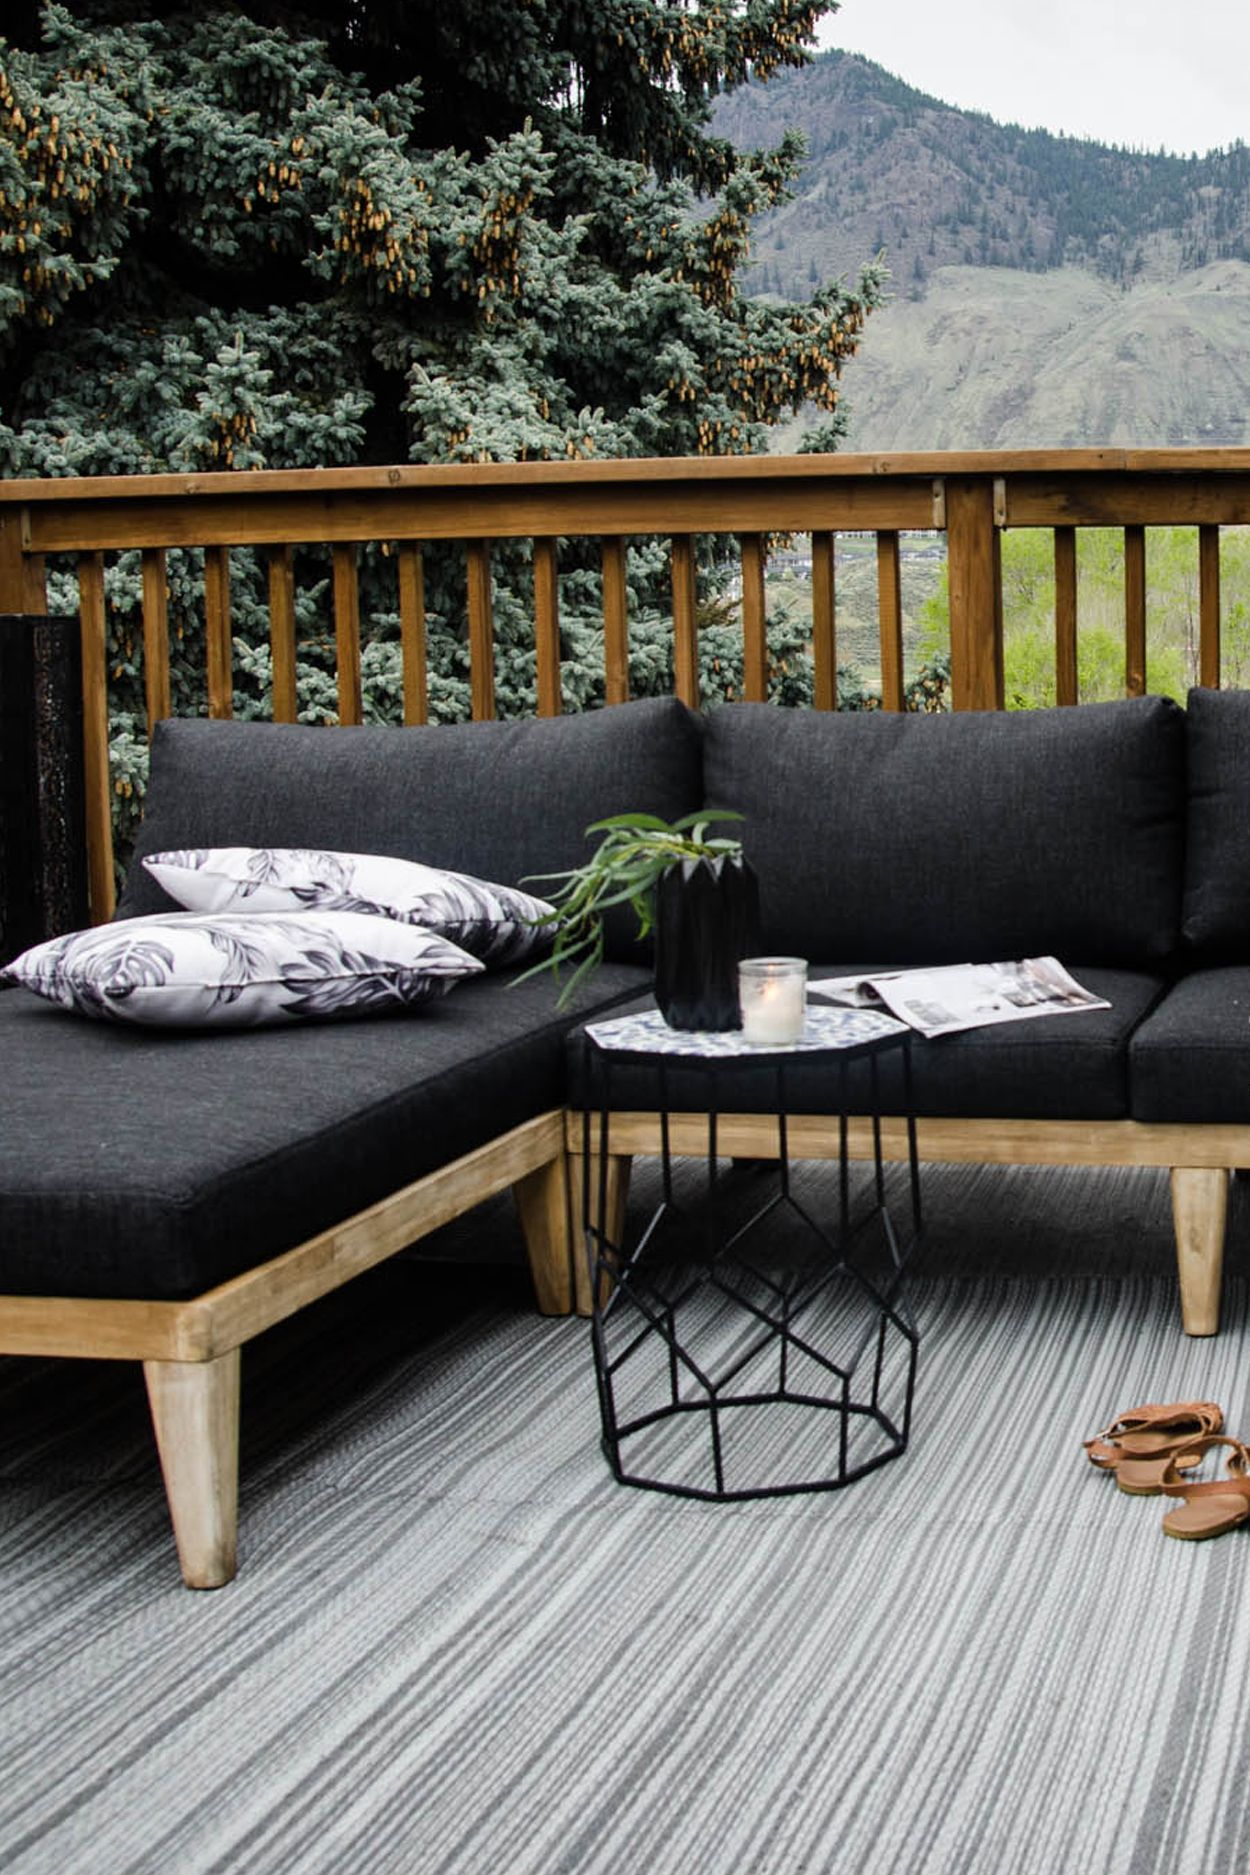 Itu0027s Like Real Deal Furniture But For The Outdoors. Which Is A Huge  Difference From Any Outdoor Pieces Weu0027ve Had Before. Iu0027m In Love.